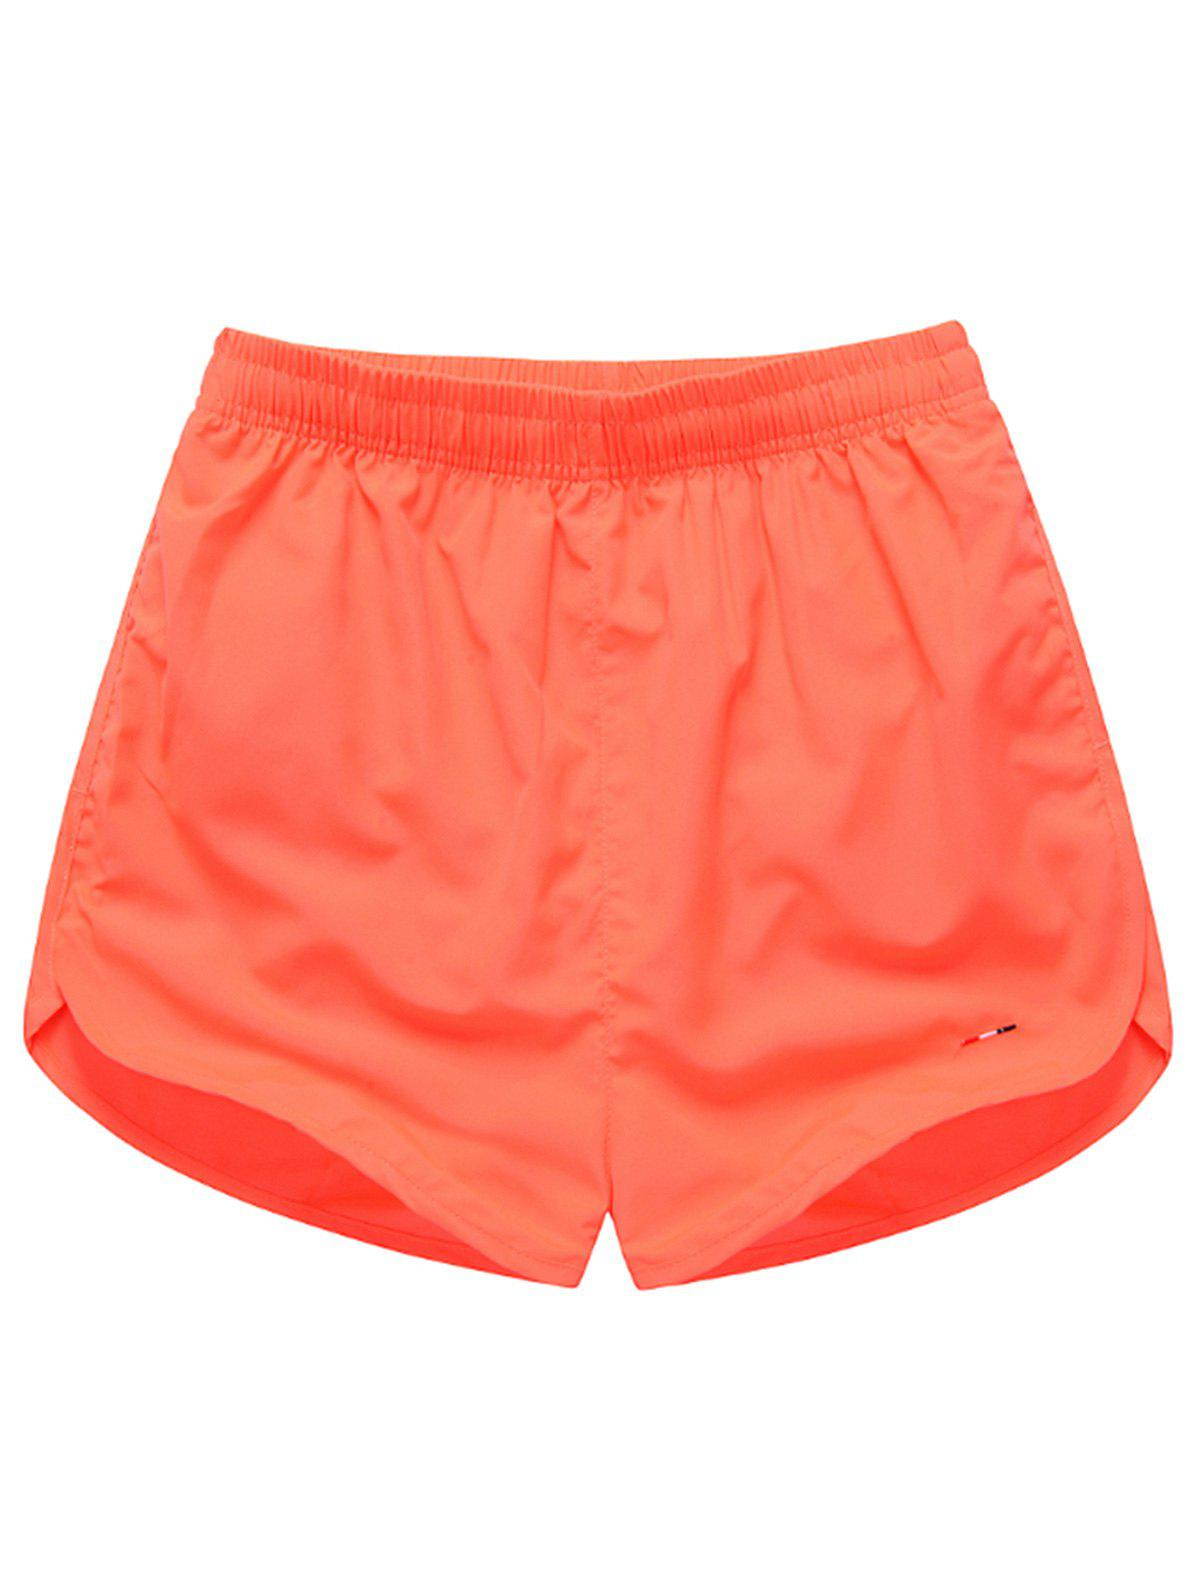 Mesh Lined Dolphin Hem Beach Shorts - WATERMELON RED XL